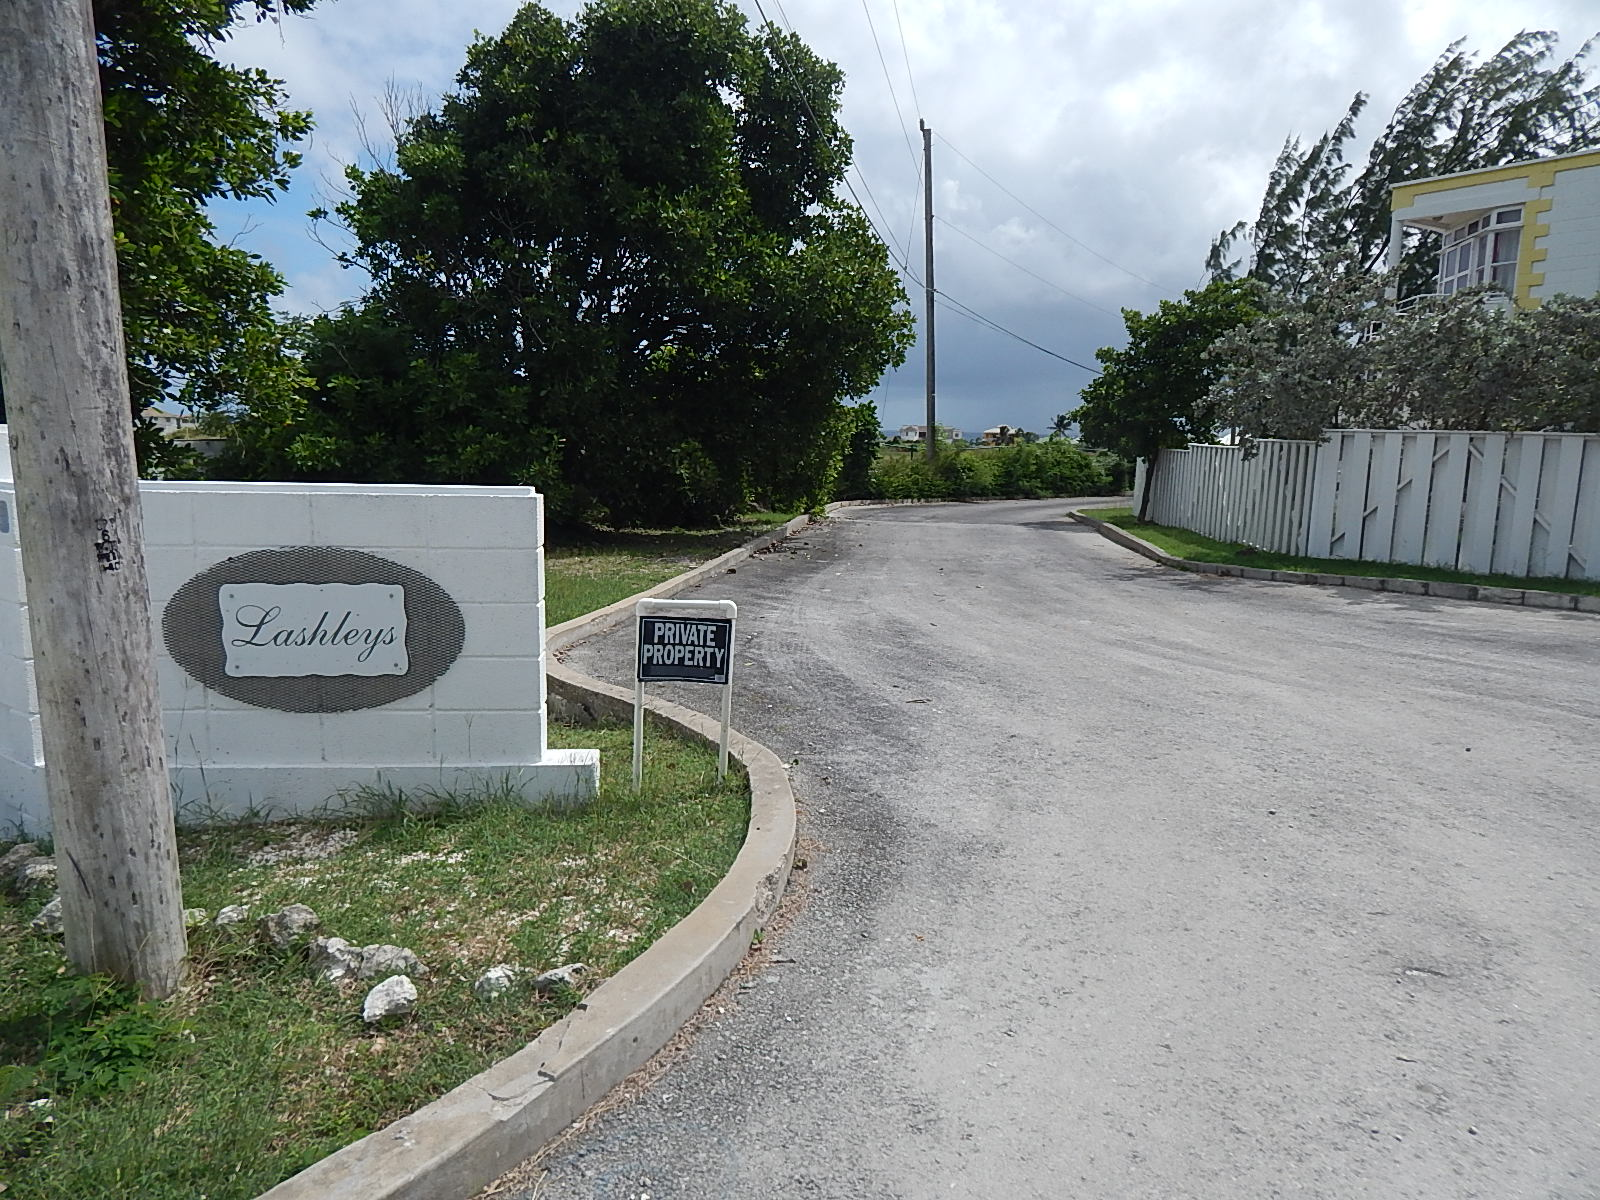 Lashley Road, St. Martin St. Philip